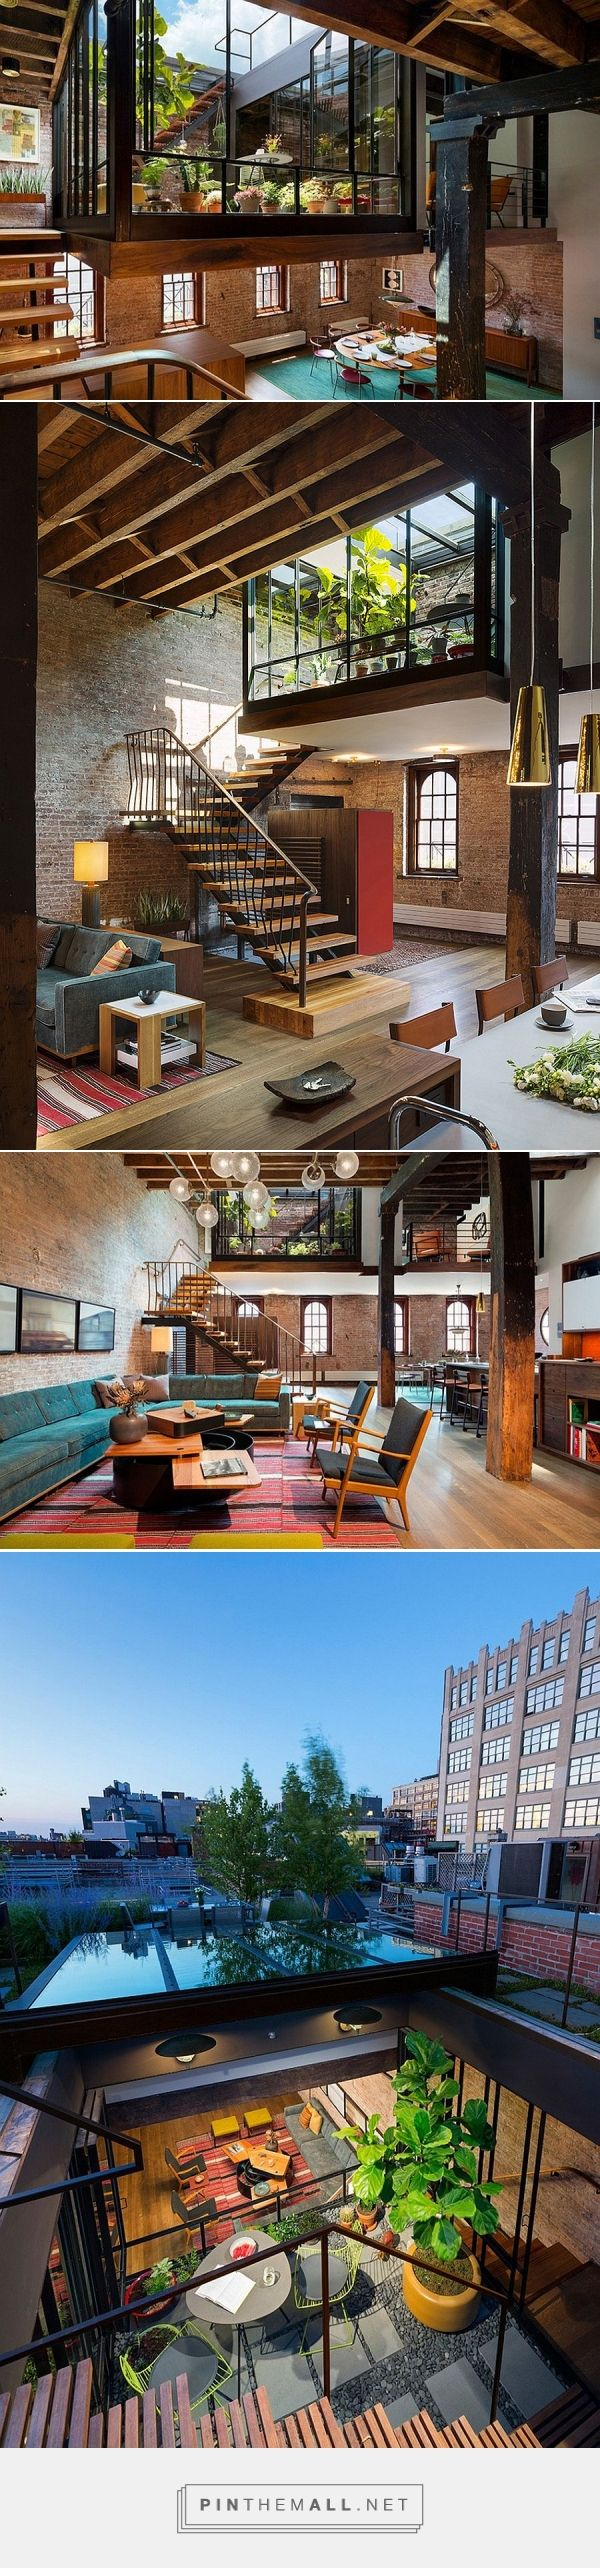 Old Caviar Warehouse Converted into a Sensational NYC Loft